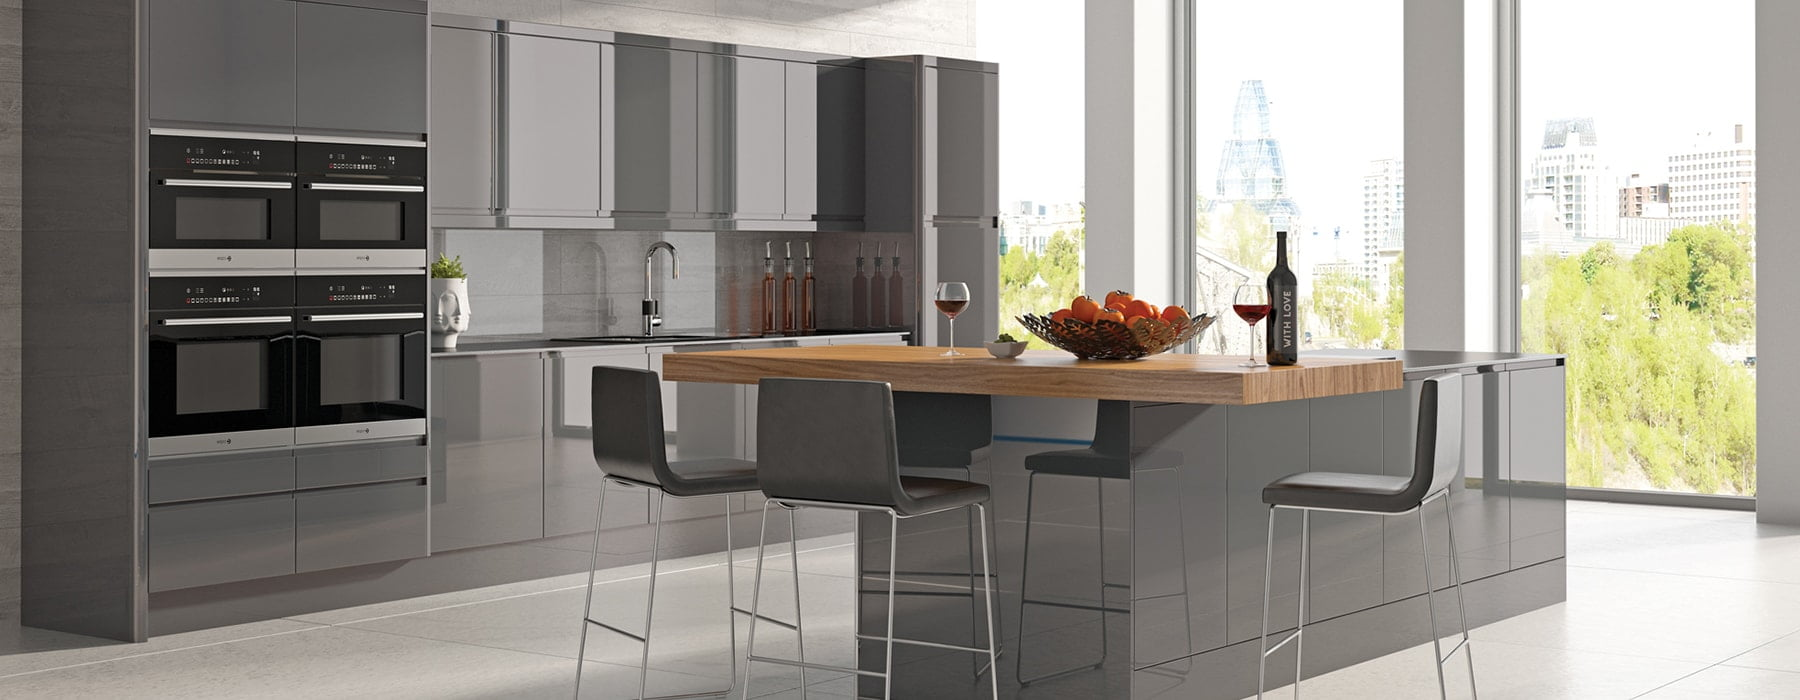 Integra Dakota Handleless Kitchen